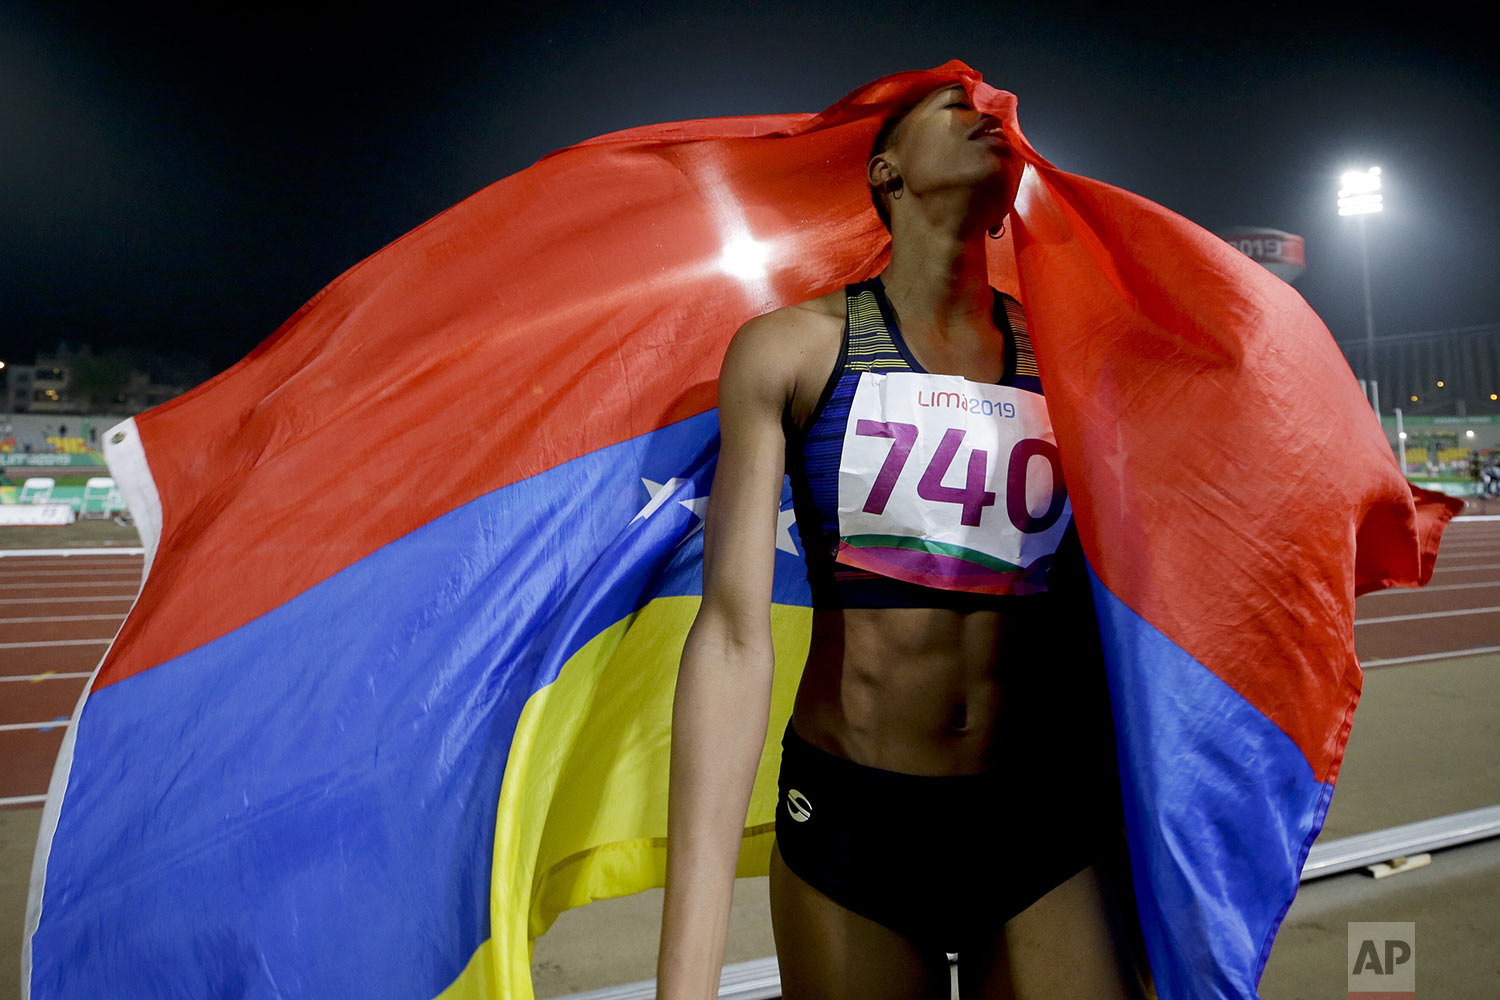 Yulimar Rojas of Venezuela celebrates after winning the gold medal in the women's triple jump final, setting a new Pan American record, during the athletics at the Pan American Games in Lima, Peru, Friday, Aug. 9, 2019. (AP Photo/Fernando Vergara)